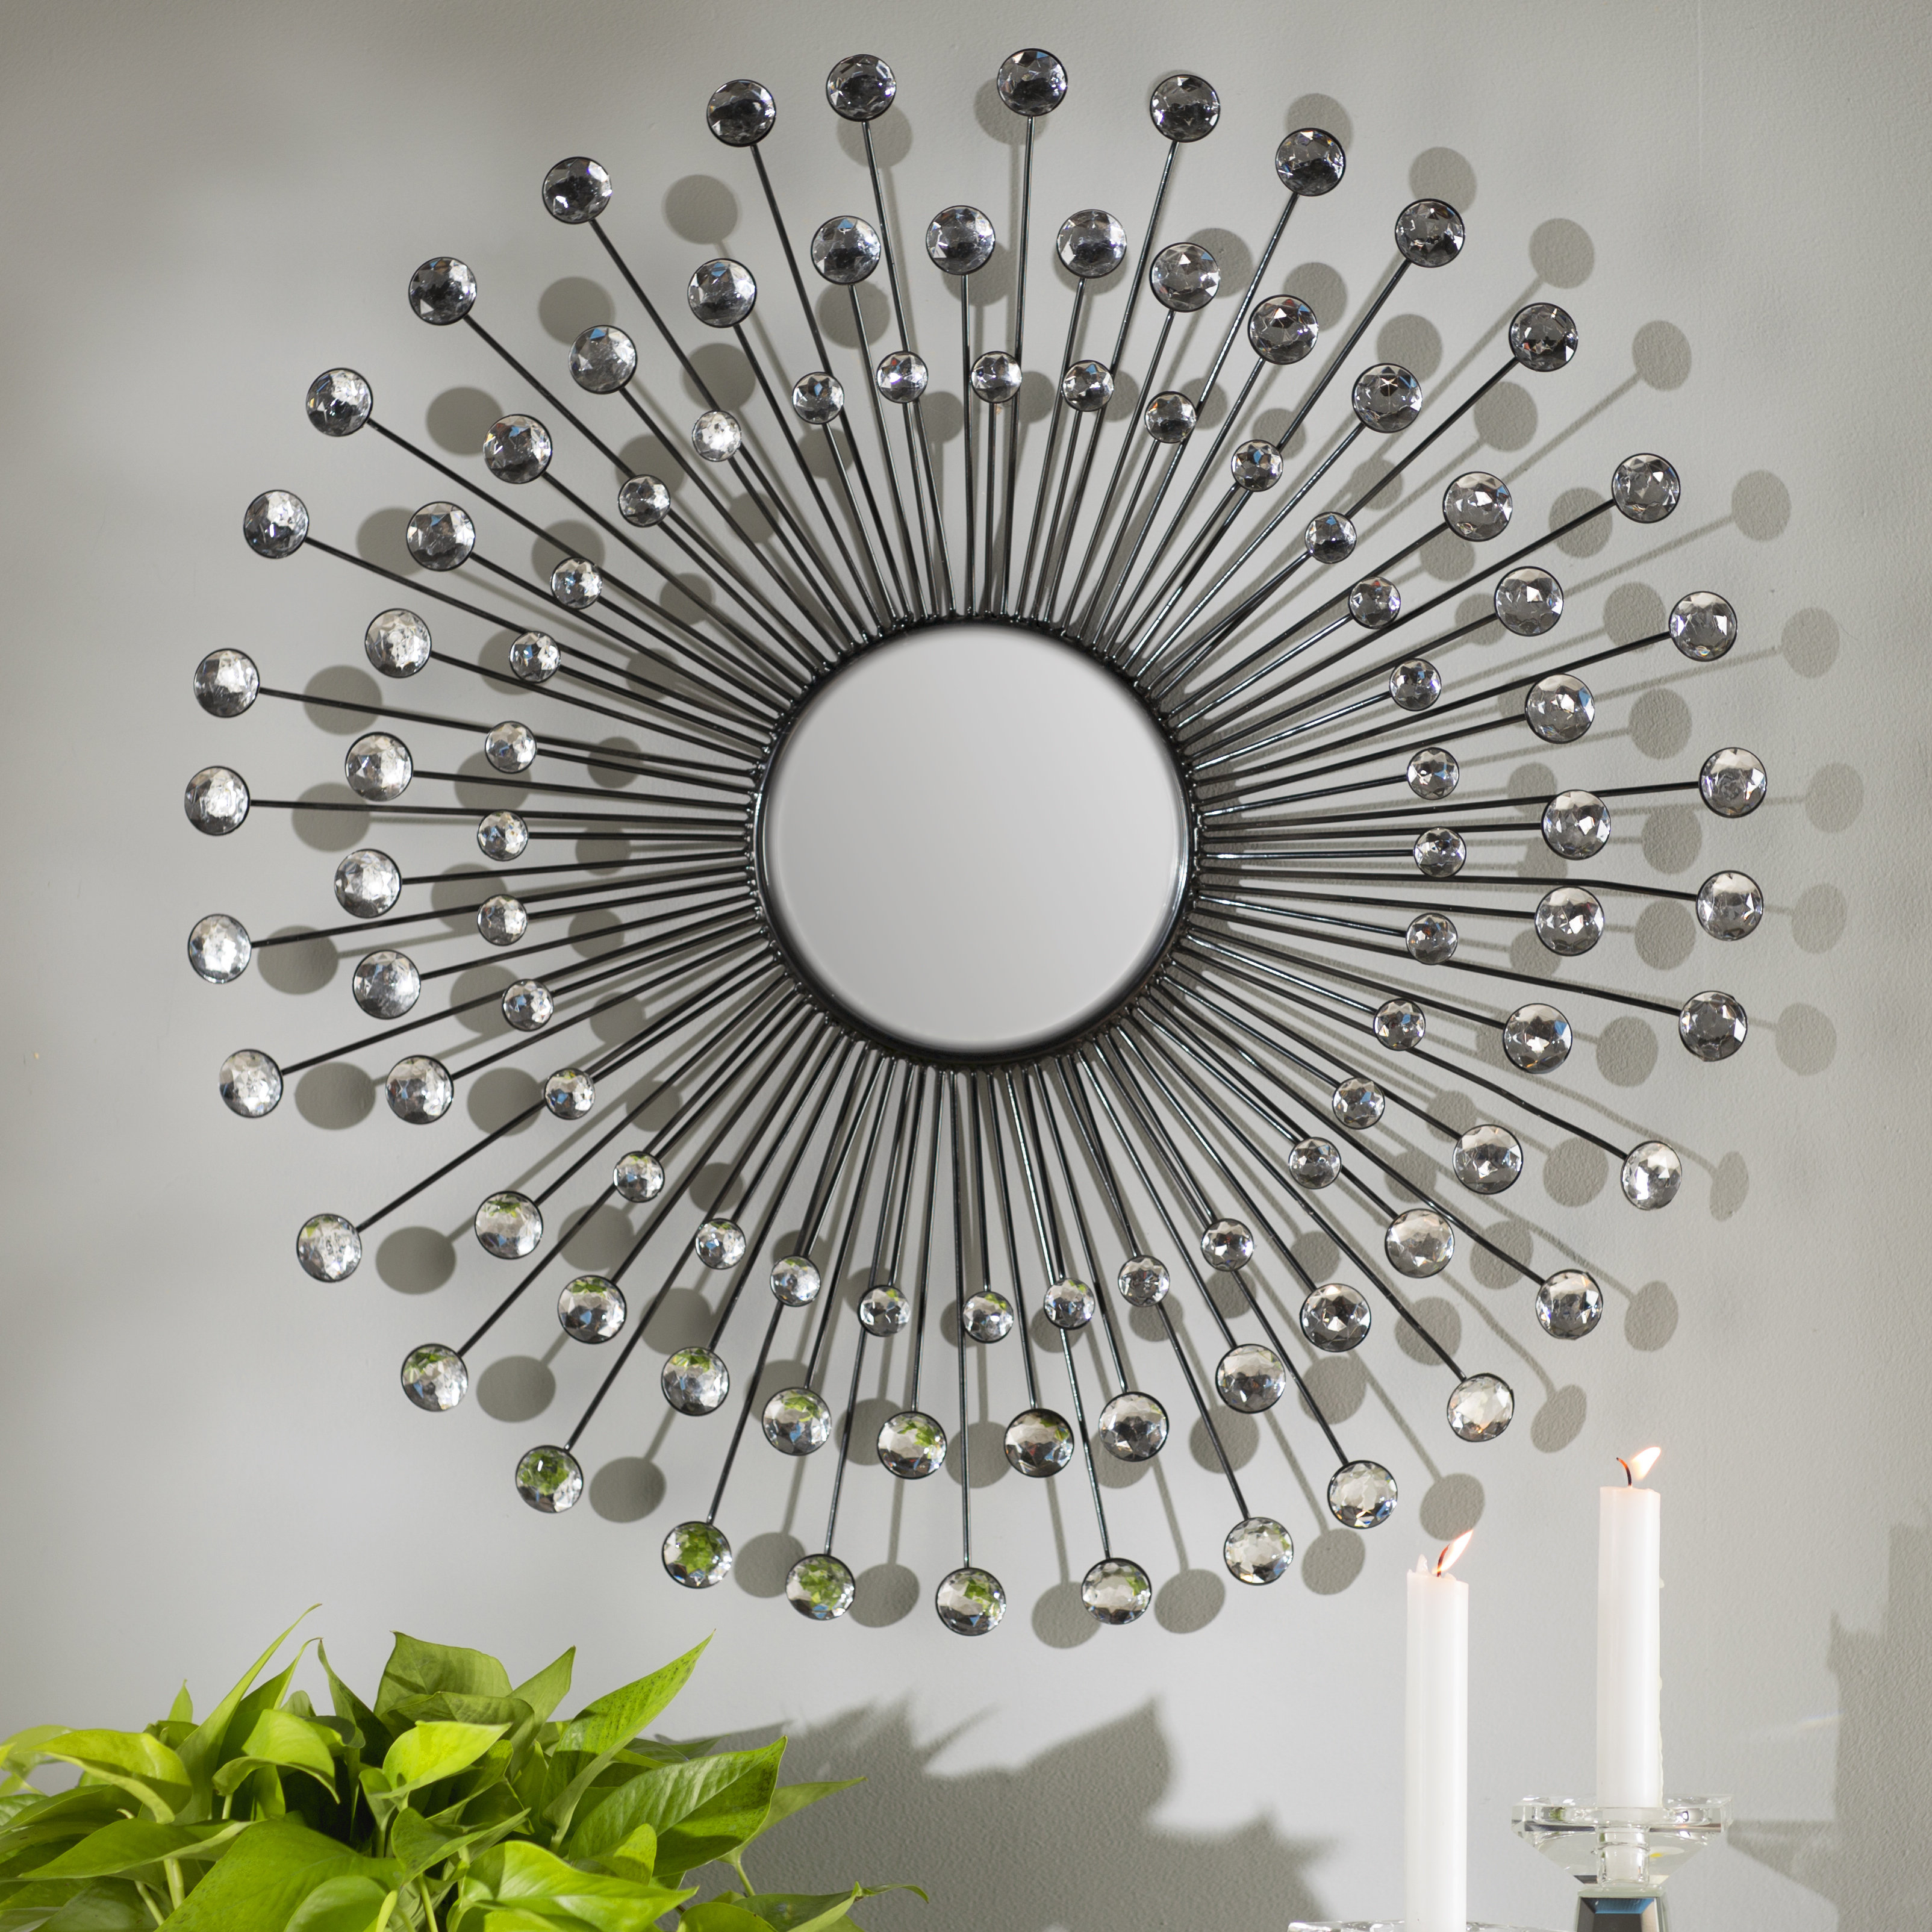 2020 Accent Sunburst Mirrors Youll Love Wayfair Look At This For Carstens Sunburst Leaves Wall Mirrors (View 9 of 20)